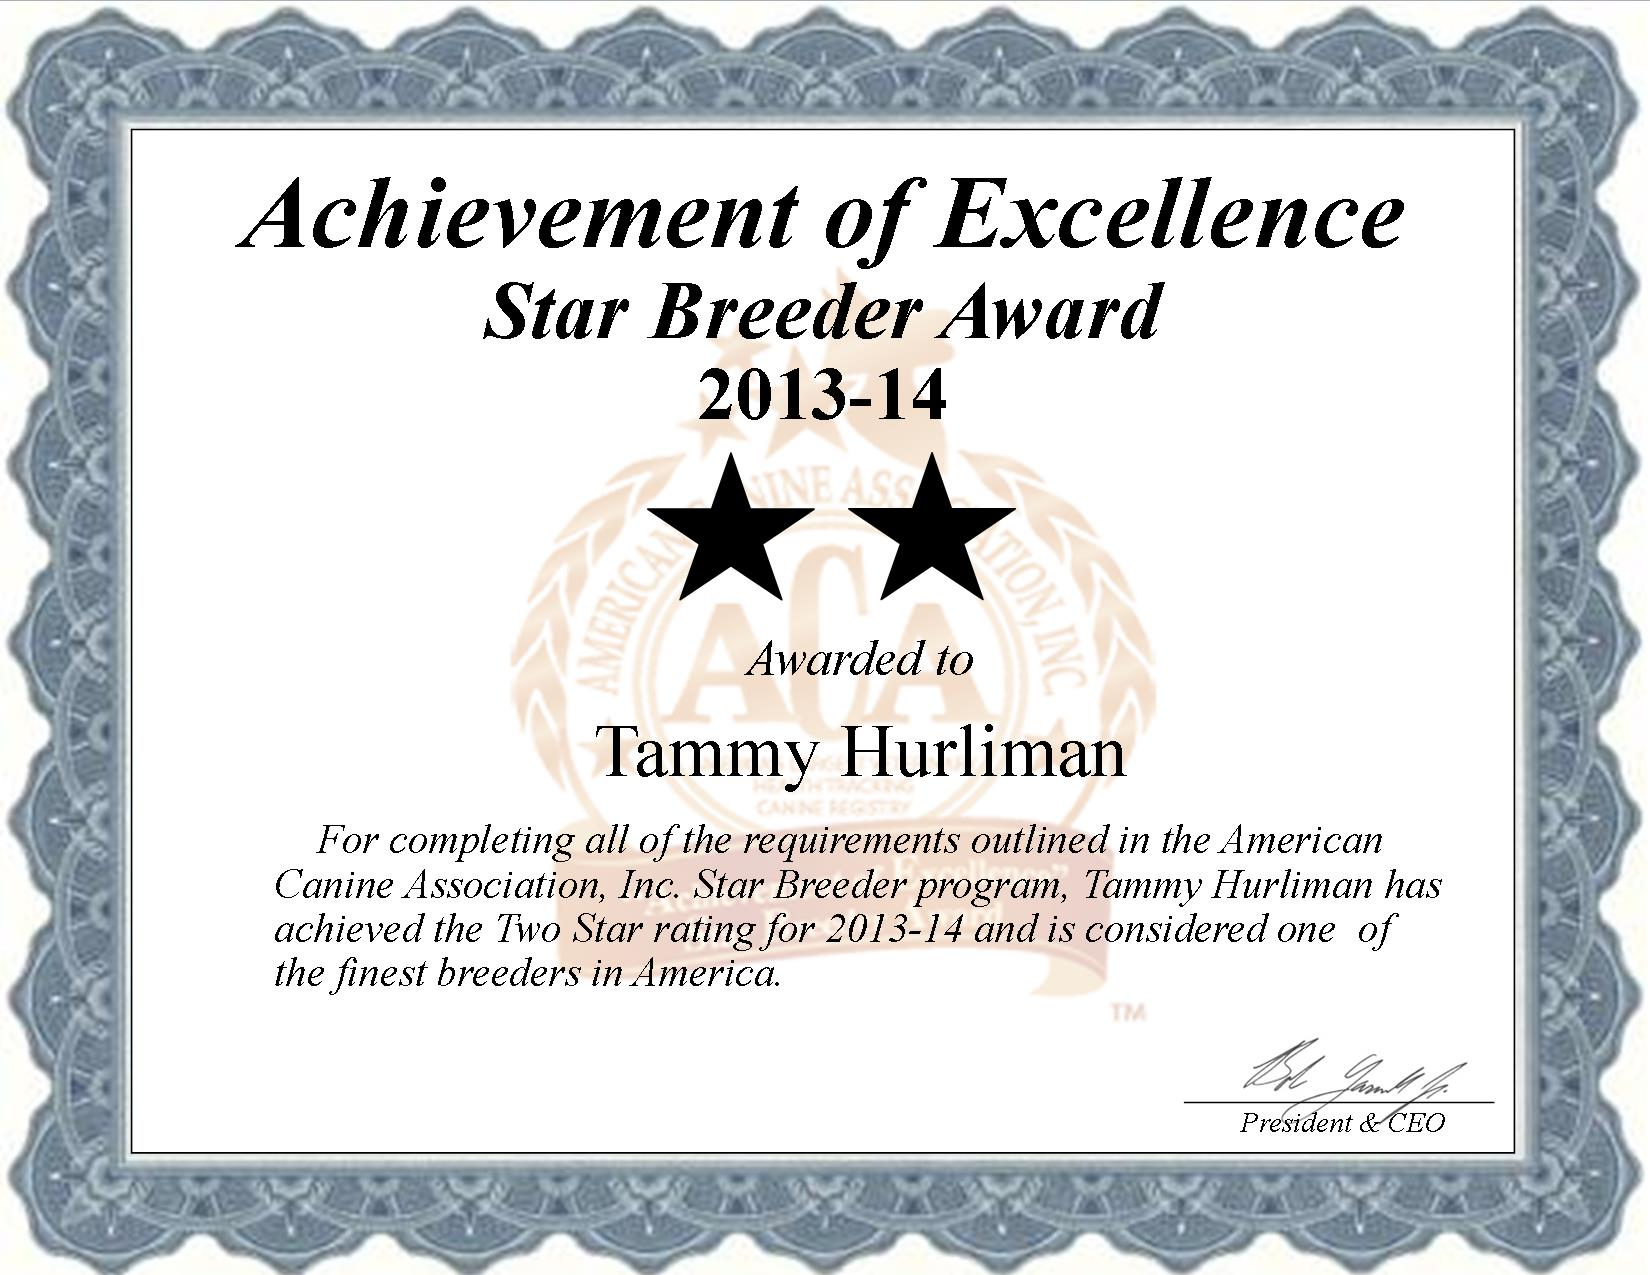 Tammy Hurliman, Hurliman Kennel, Hurliman do breeder, star breeder, aca, star breeder, 2 star, cordell, Oklahoma, ok, dog, puppy, puppies, dog breeder, dog breeders, Oklahoma breeder, Tammy Hurliman dog breeder